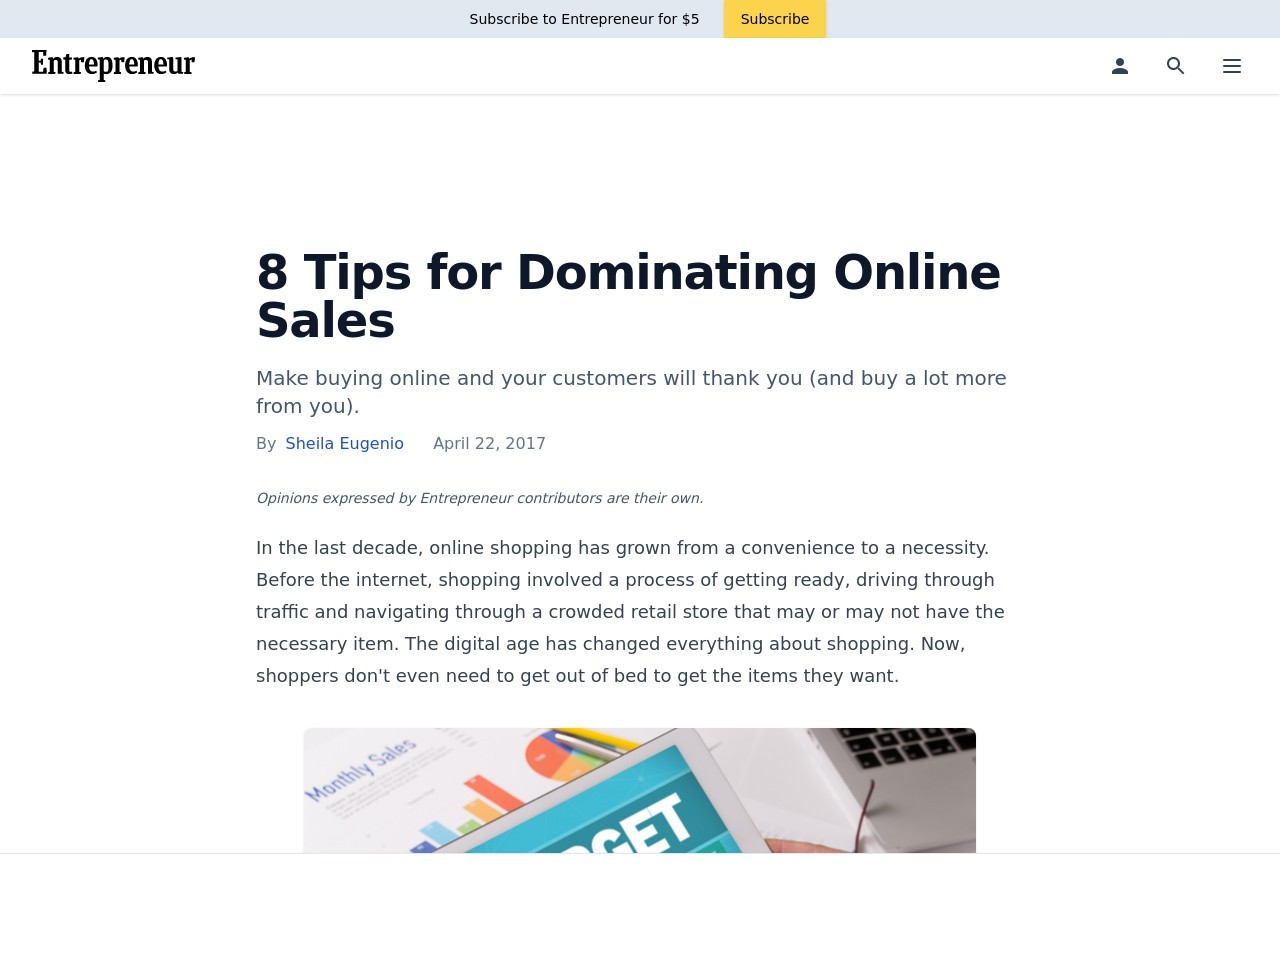 8 Tips for Dominating Online Sales